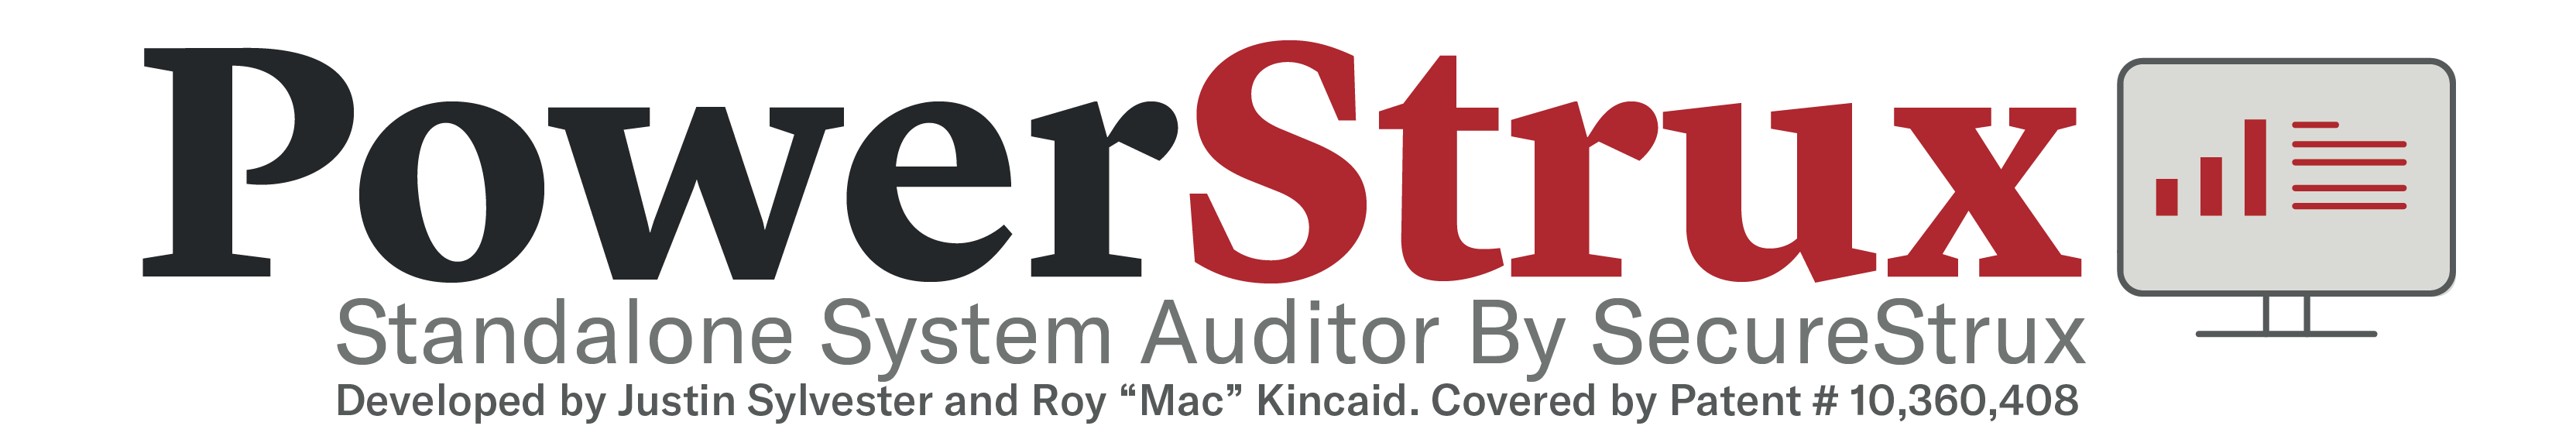 2020Standalone System Auditor@4x